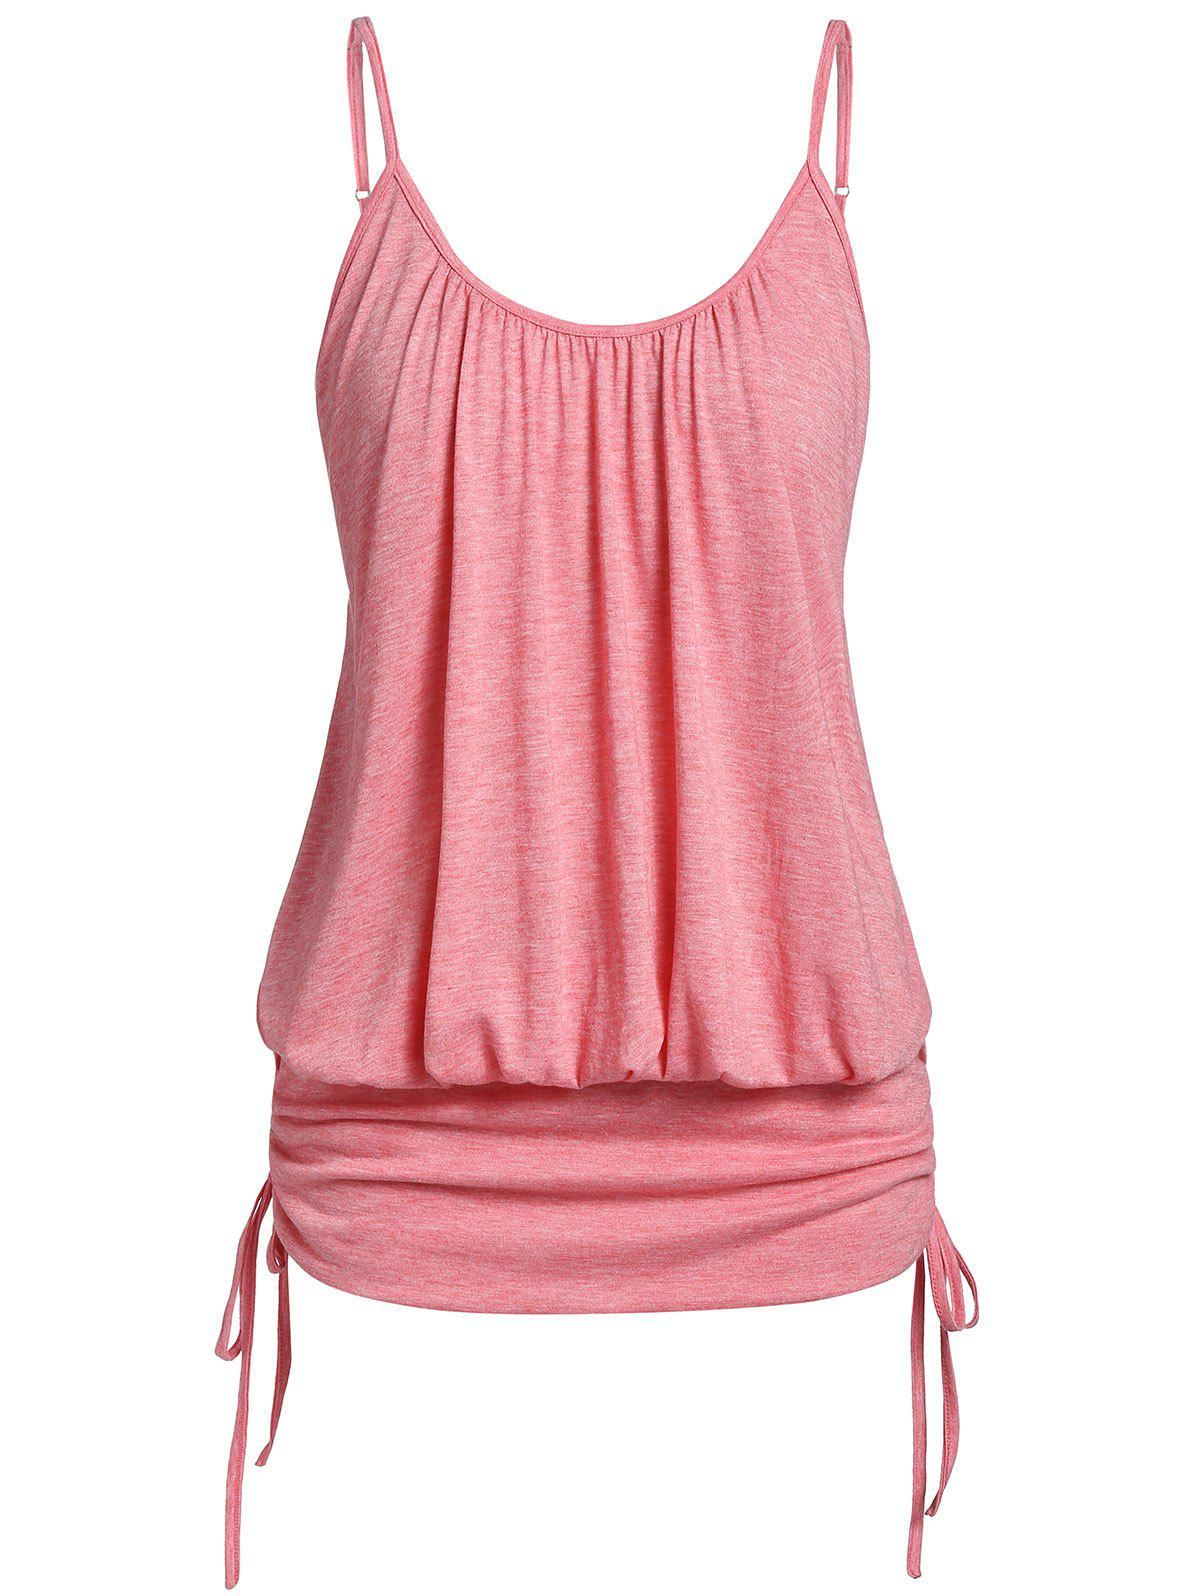 Plus Size Marled Spaghetti Strap Cinched Tank Top - FLAMINGO PINK 4X